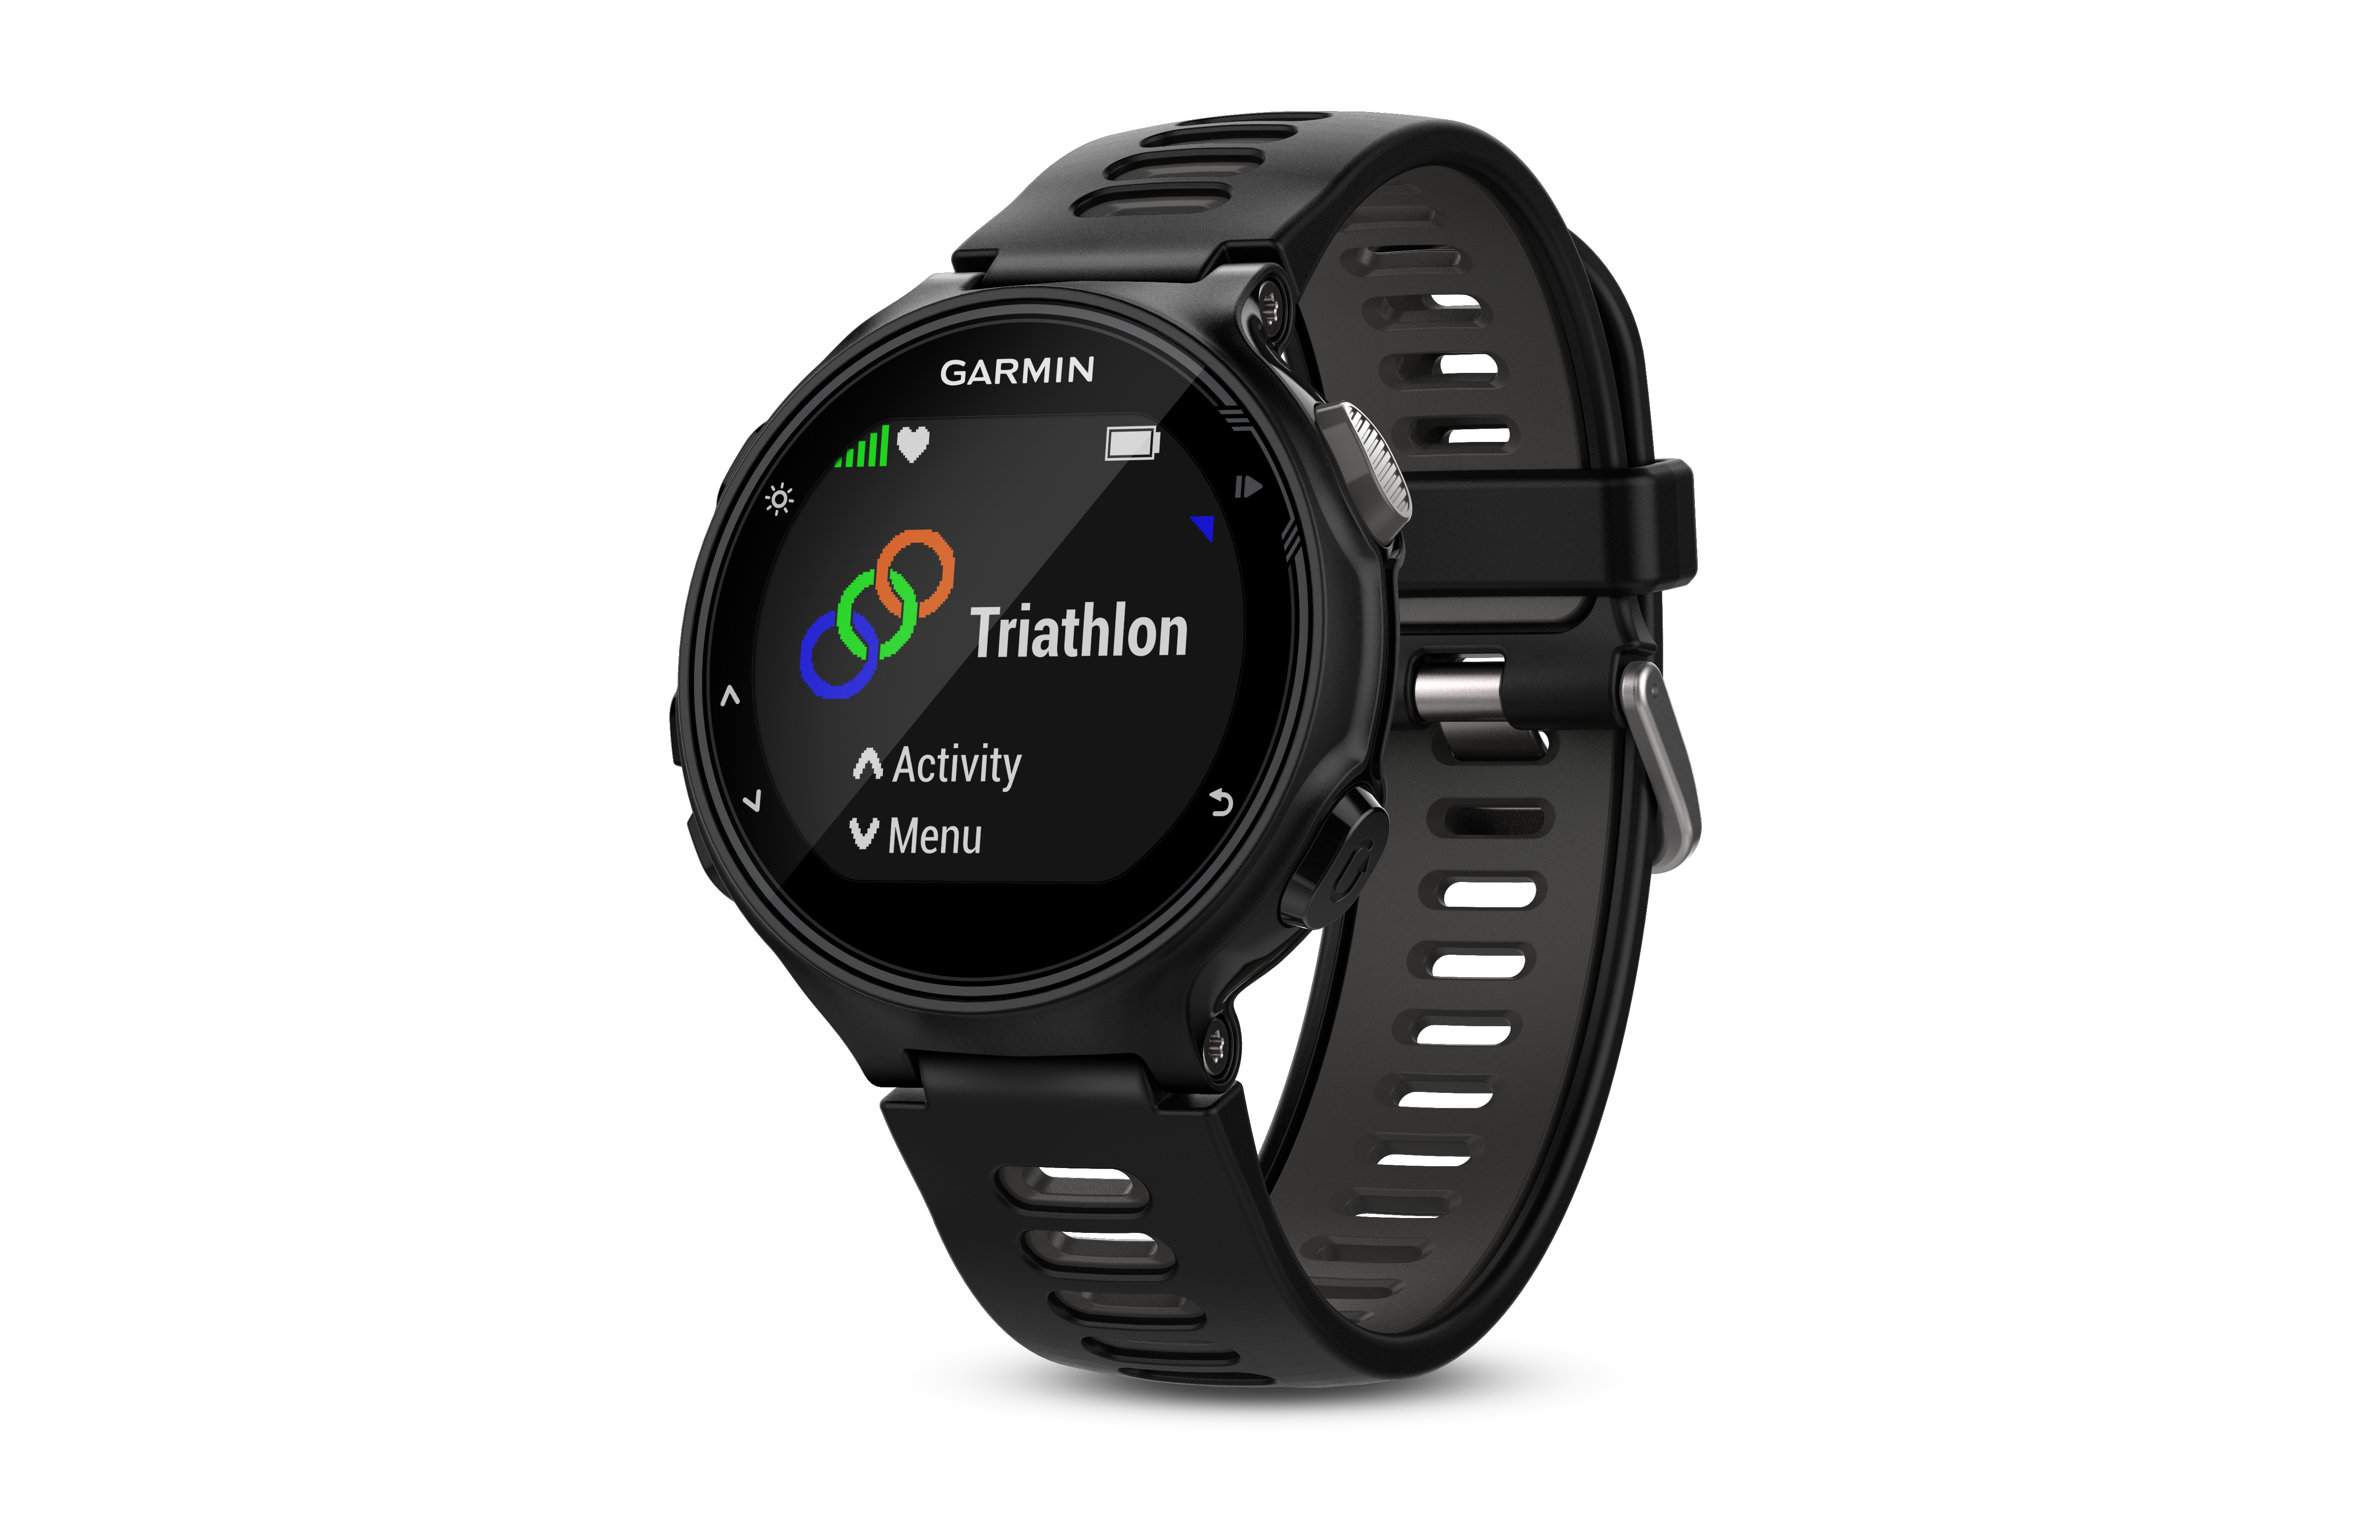 clip freeuse download Forerunner xt review the. Vector 1 garmin